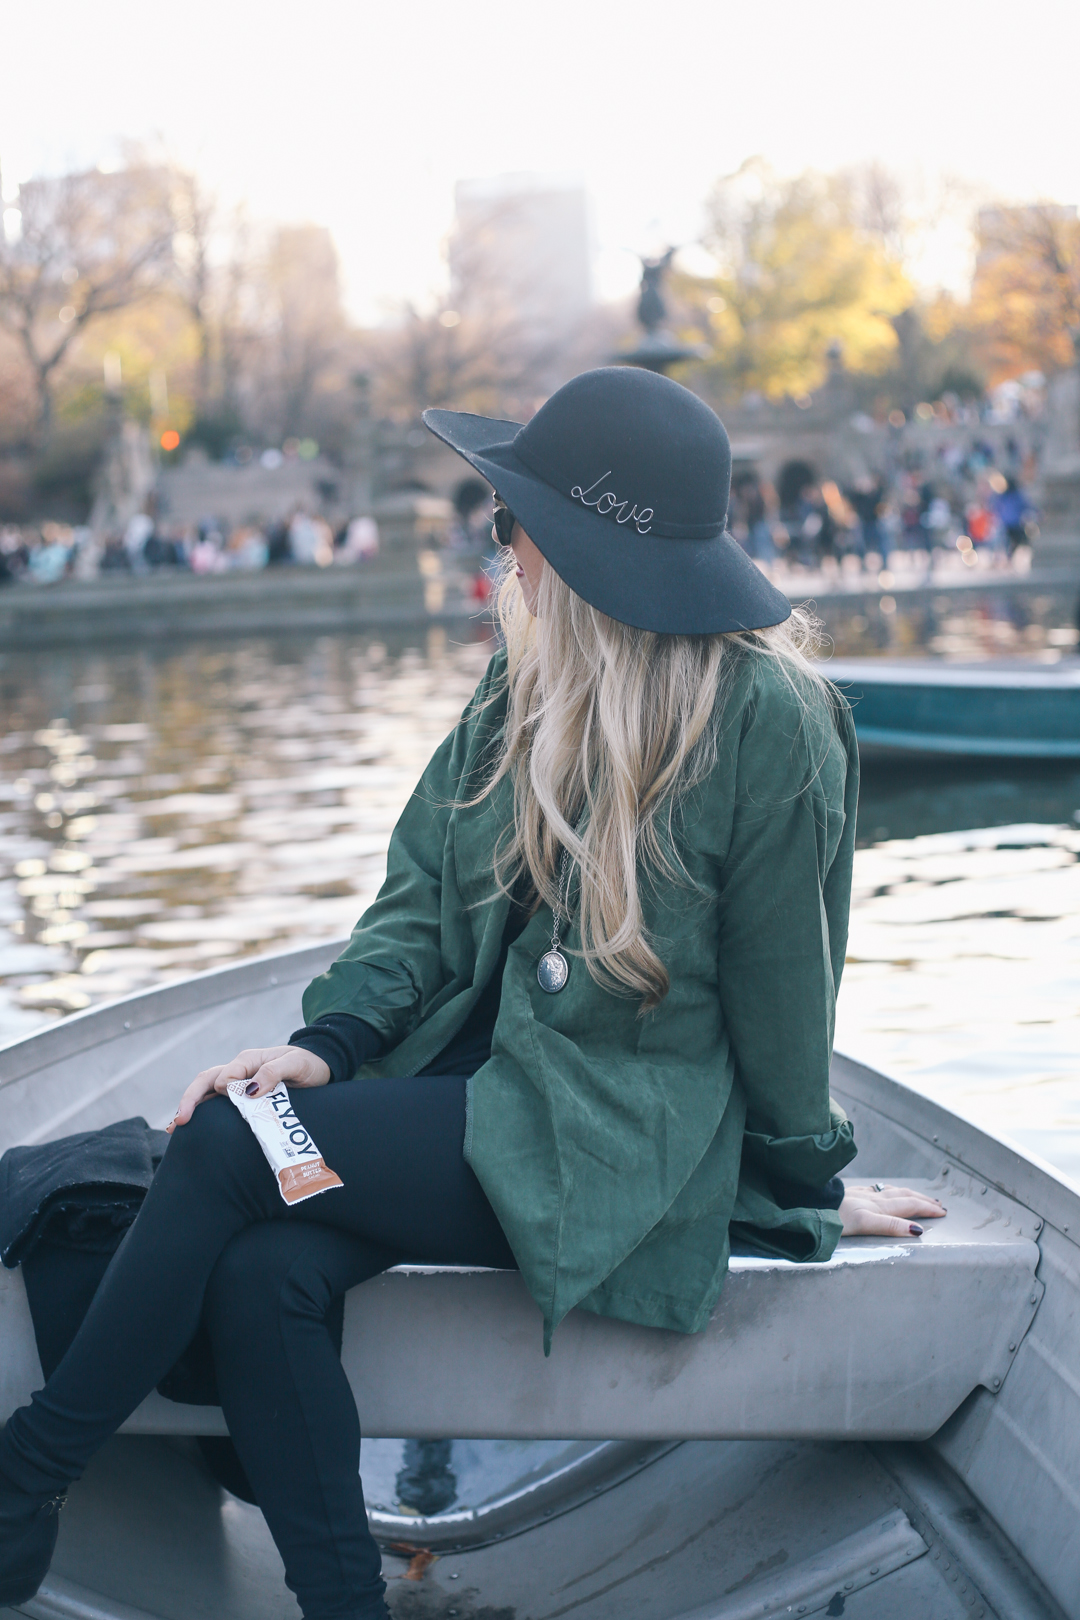 beyond-blessed-row-boats-in-central-park-19